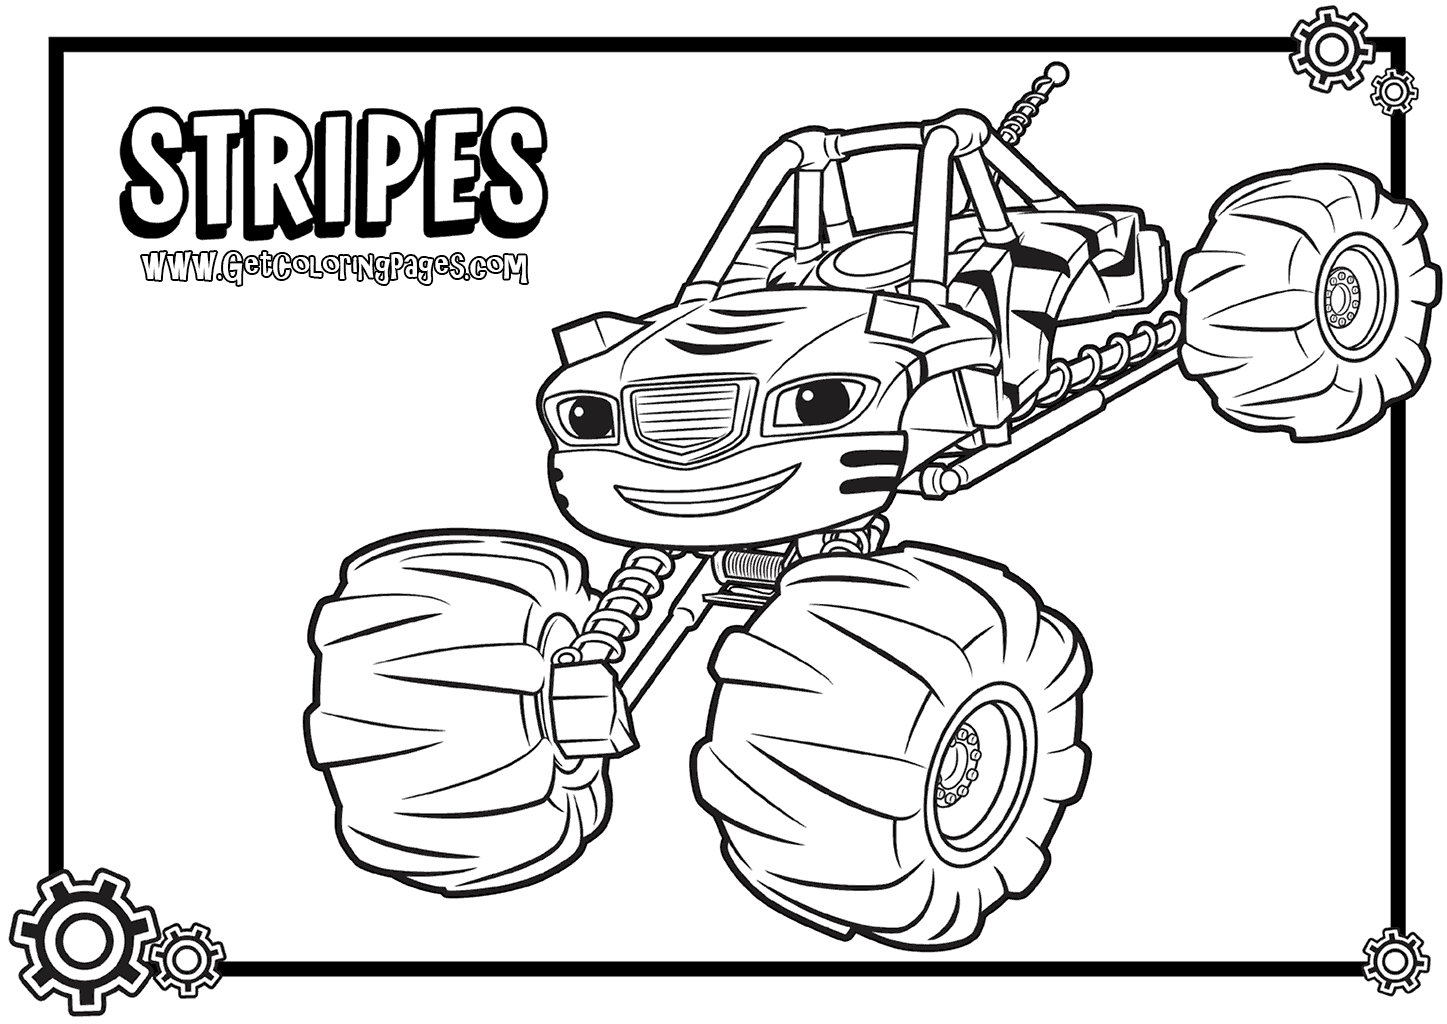 tiger without stripes coloring page tigers coloring pages free coloring pages tiger coloring stripes page without